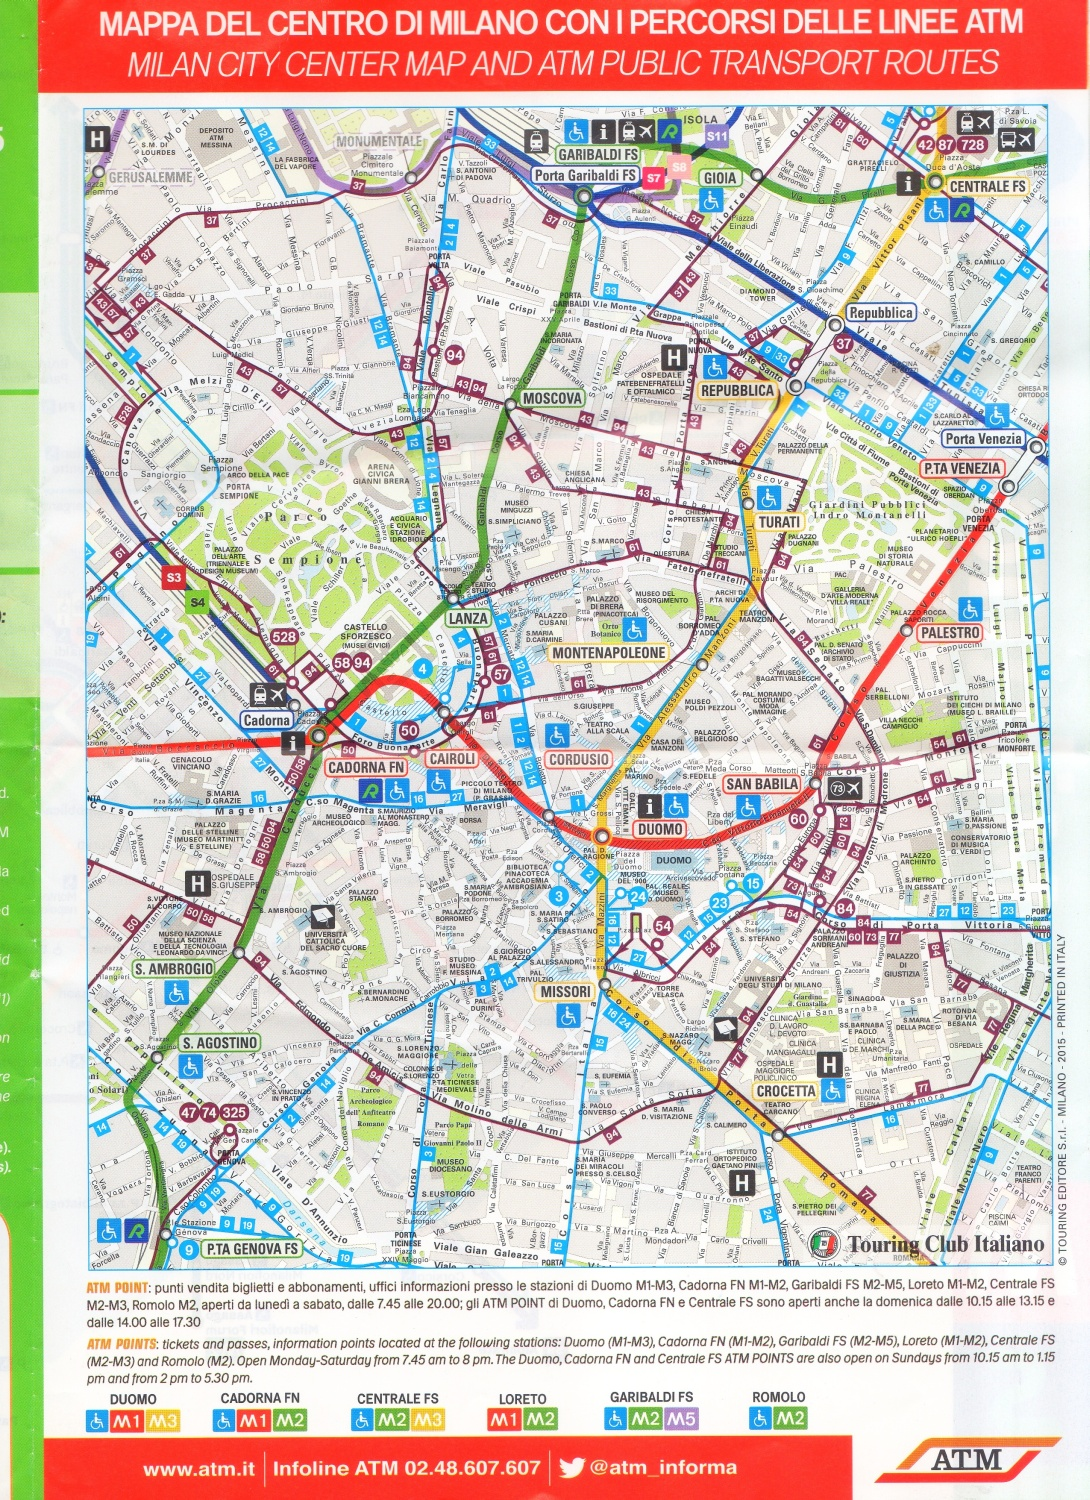 Useful links and info regarding Milan, Italy Public Transport Systems